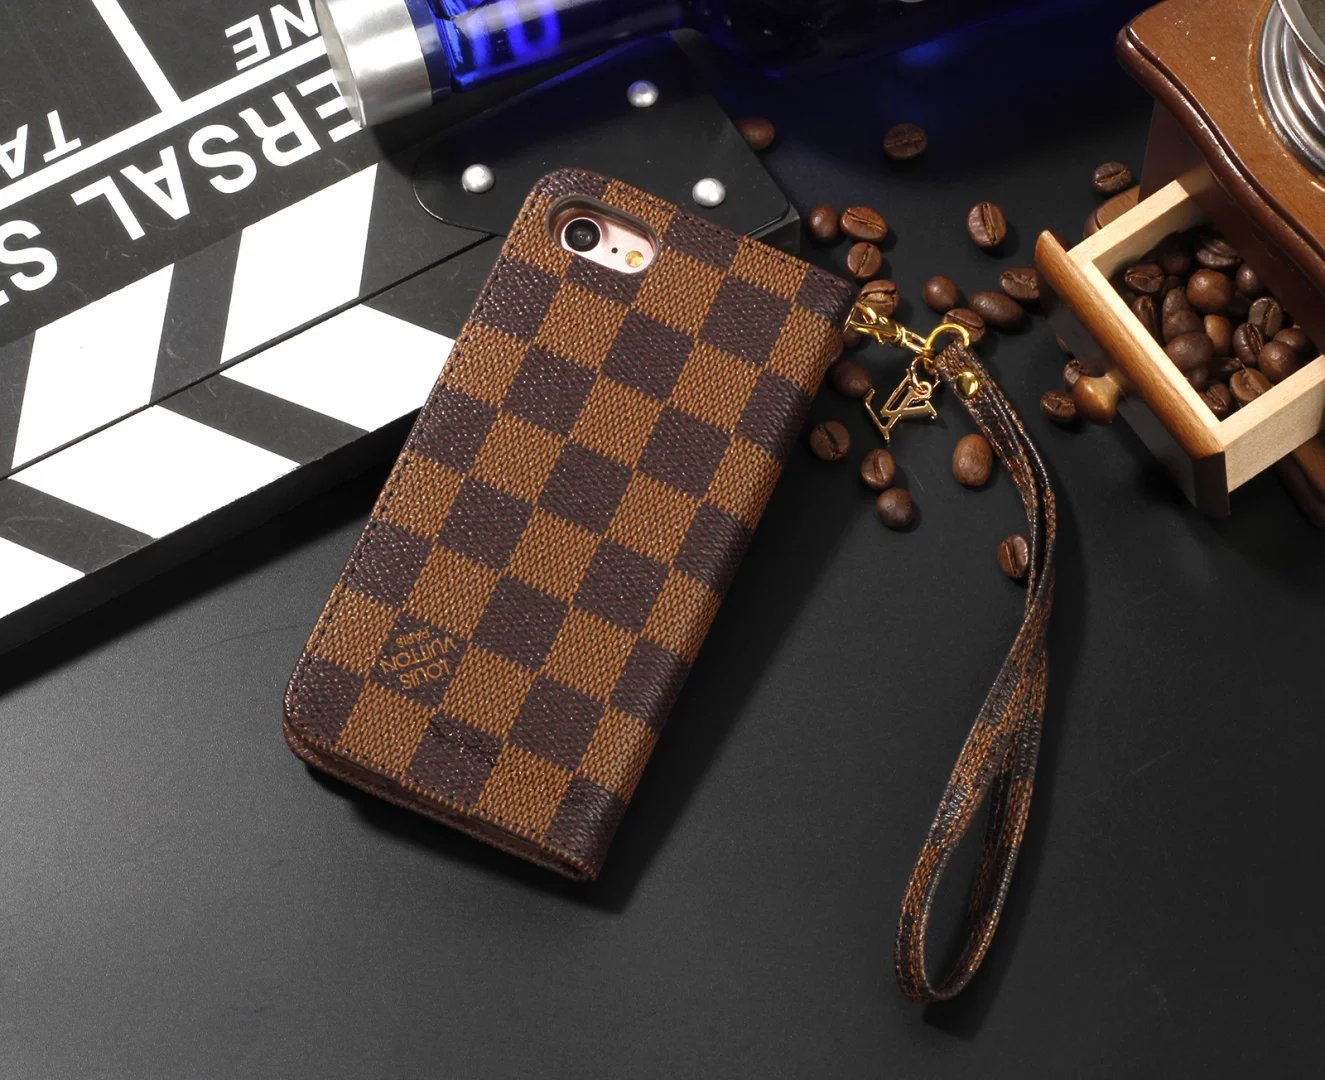 iphone case selber machen iphone silikonhülle selbst gestalten Louis Vuitton iphone 8 Plus hüllen handy schutzhülle iphone 8 Plus hülle smartphone cover 8 Pluslbst gestalten klapphülle iphone 8 Plus iphone 8 Plus hülle strass verkaufe iphone 8 Plus